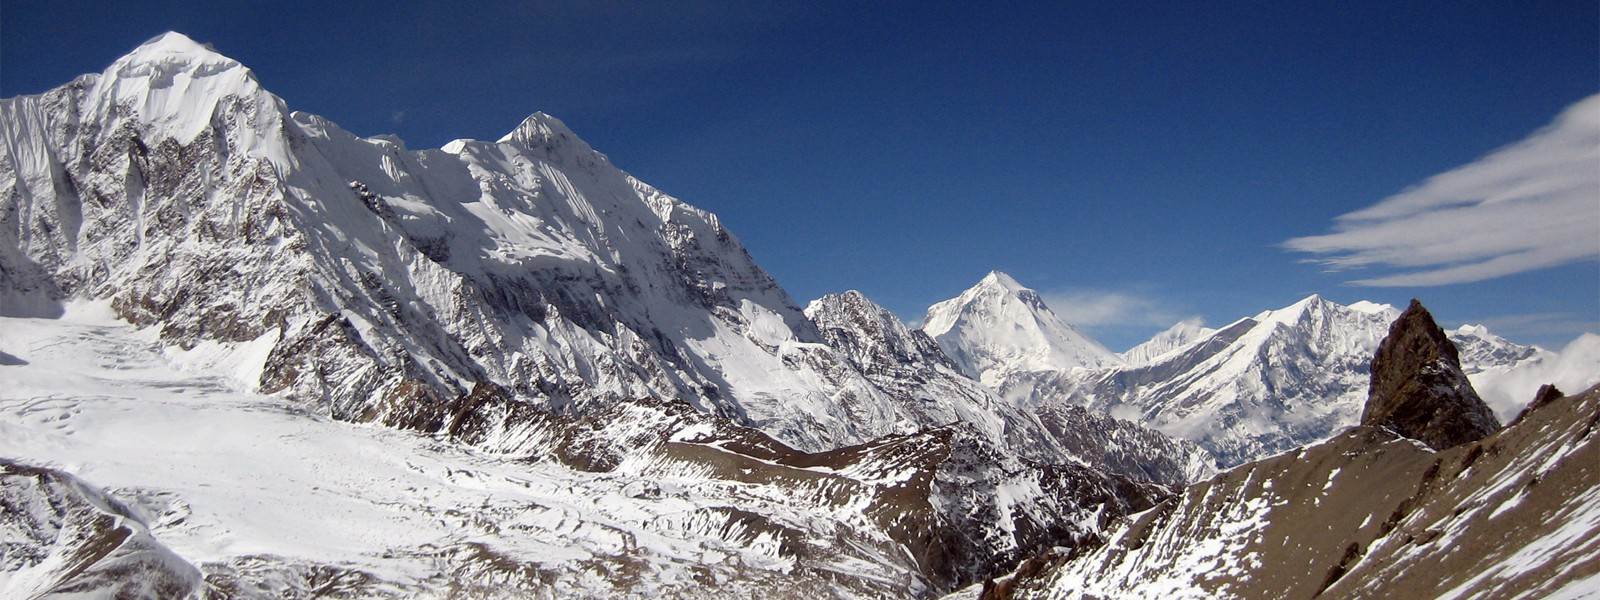 Nepal Expedition trip